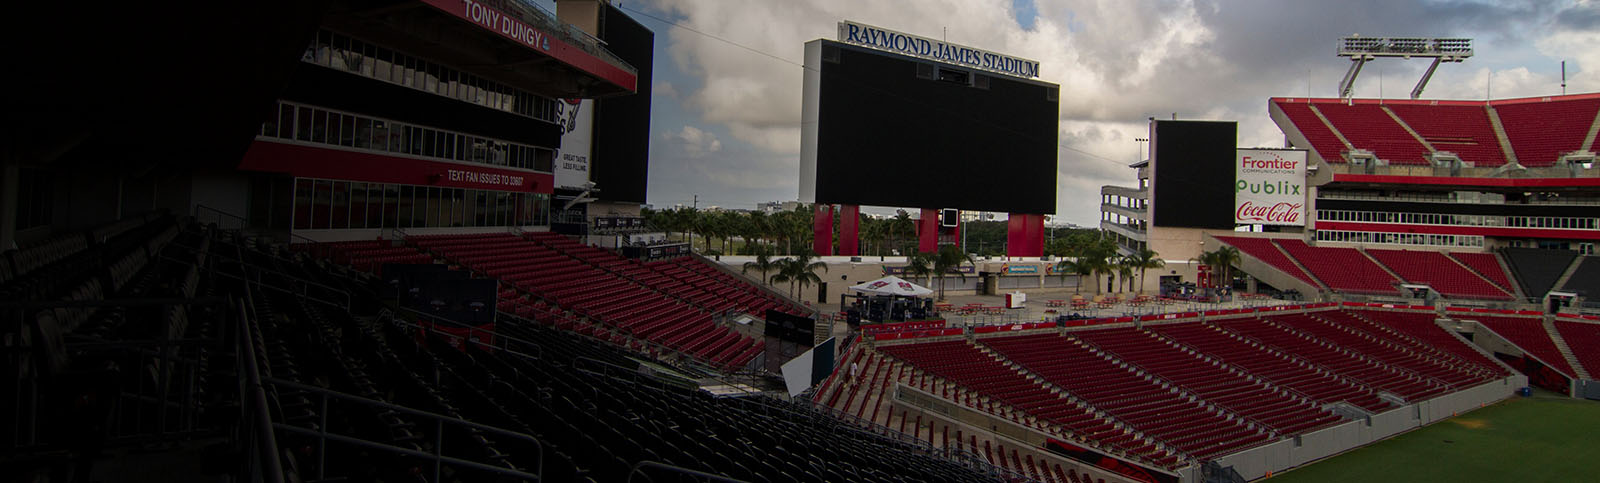 AT&T 5G+ is now available in Raymond James Stadium in Tampa, Florida.